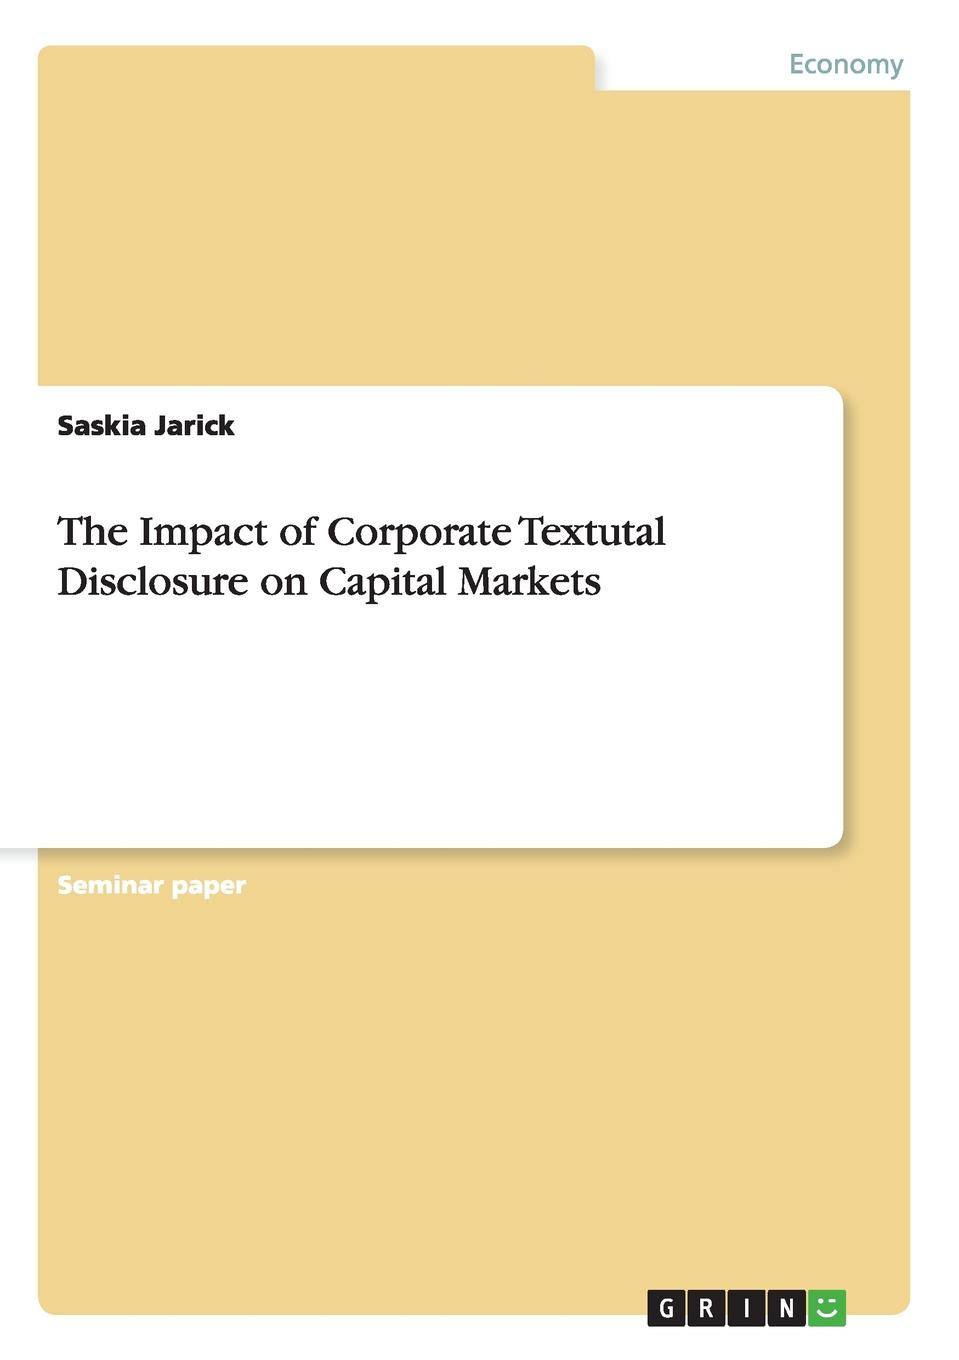 Saskia Jarick The Impact of Corporate Textutal Disclosure on Capital Markets halil kiymaz market microstructure in emerging and developed markets price discovery information flows and transaction costs